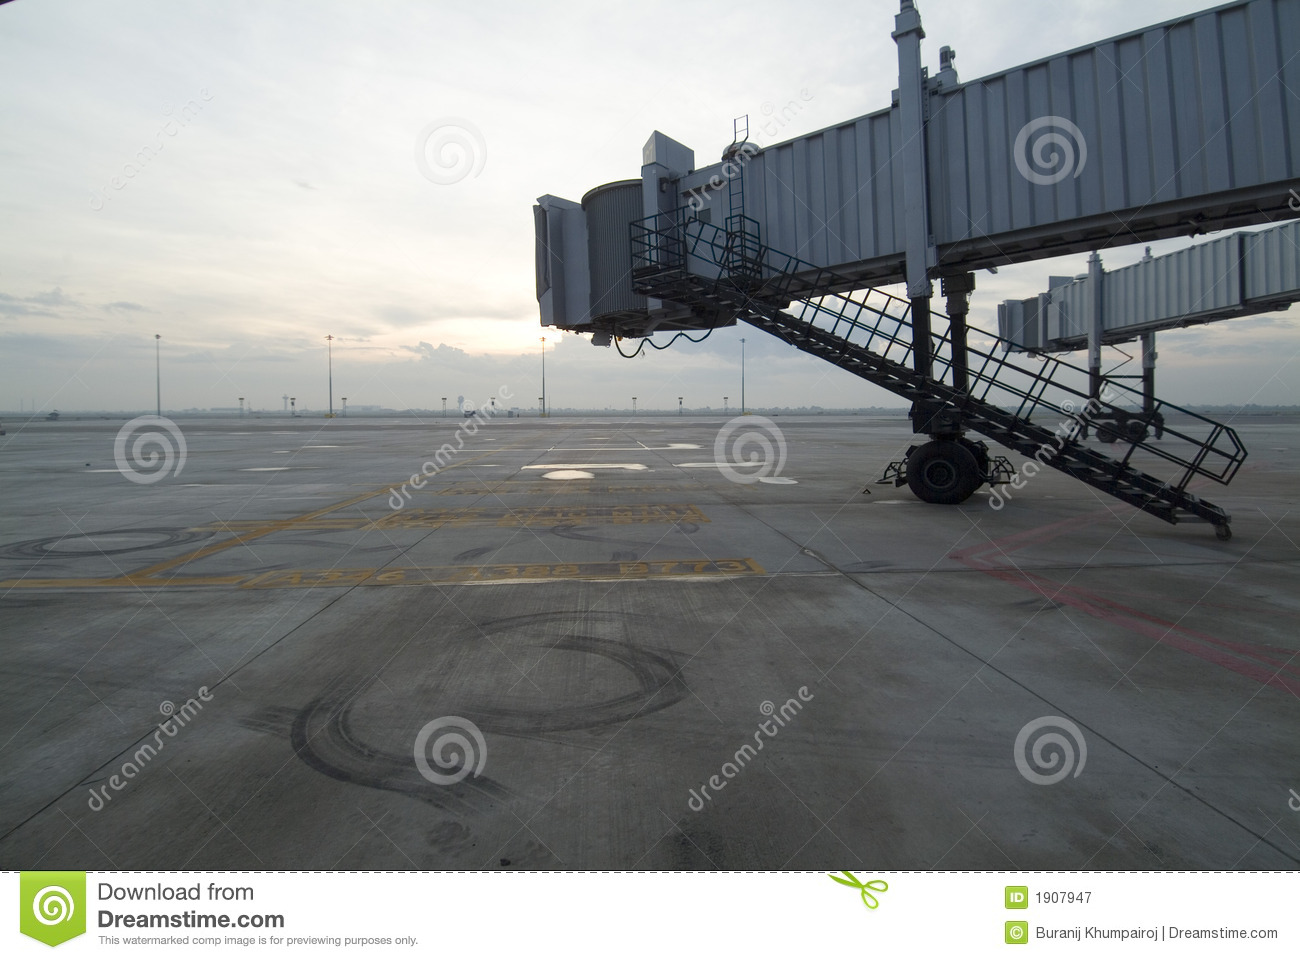 Free Images Traveling People Airport Bridge Business: Airport Jetway Bridges Royalty Free Stock Photography